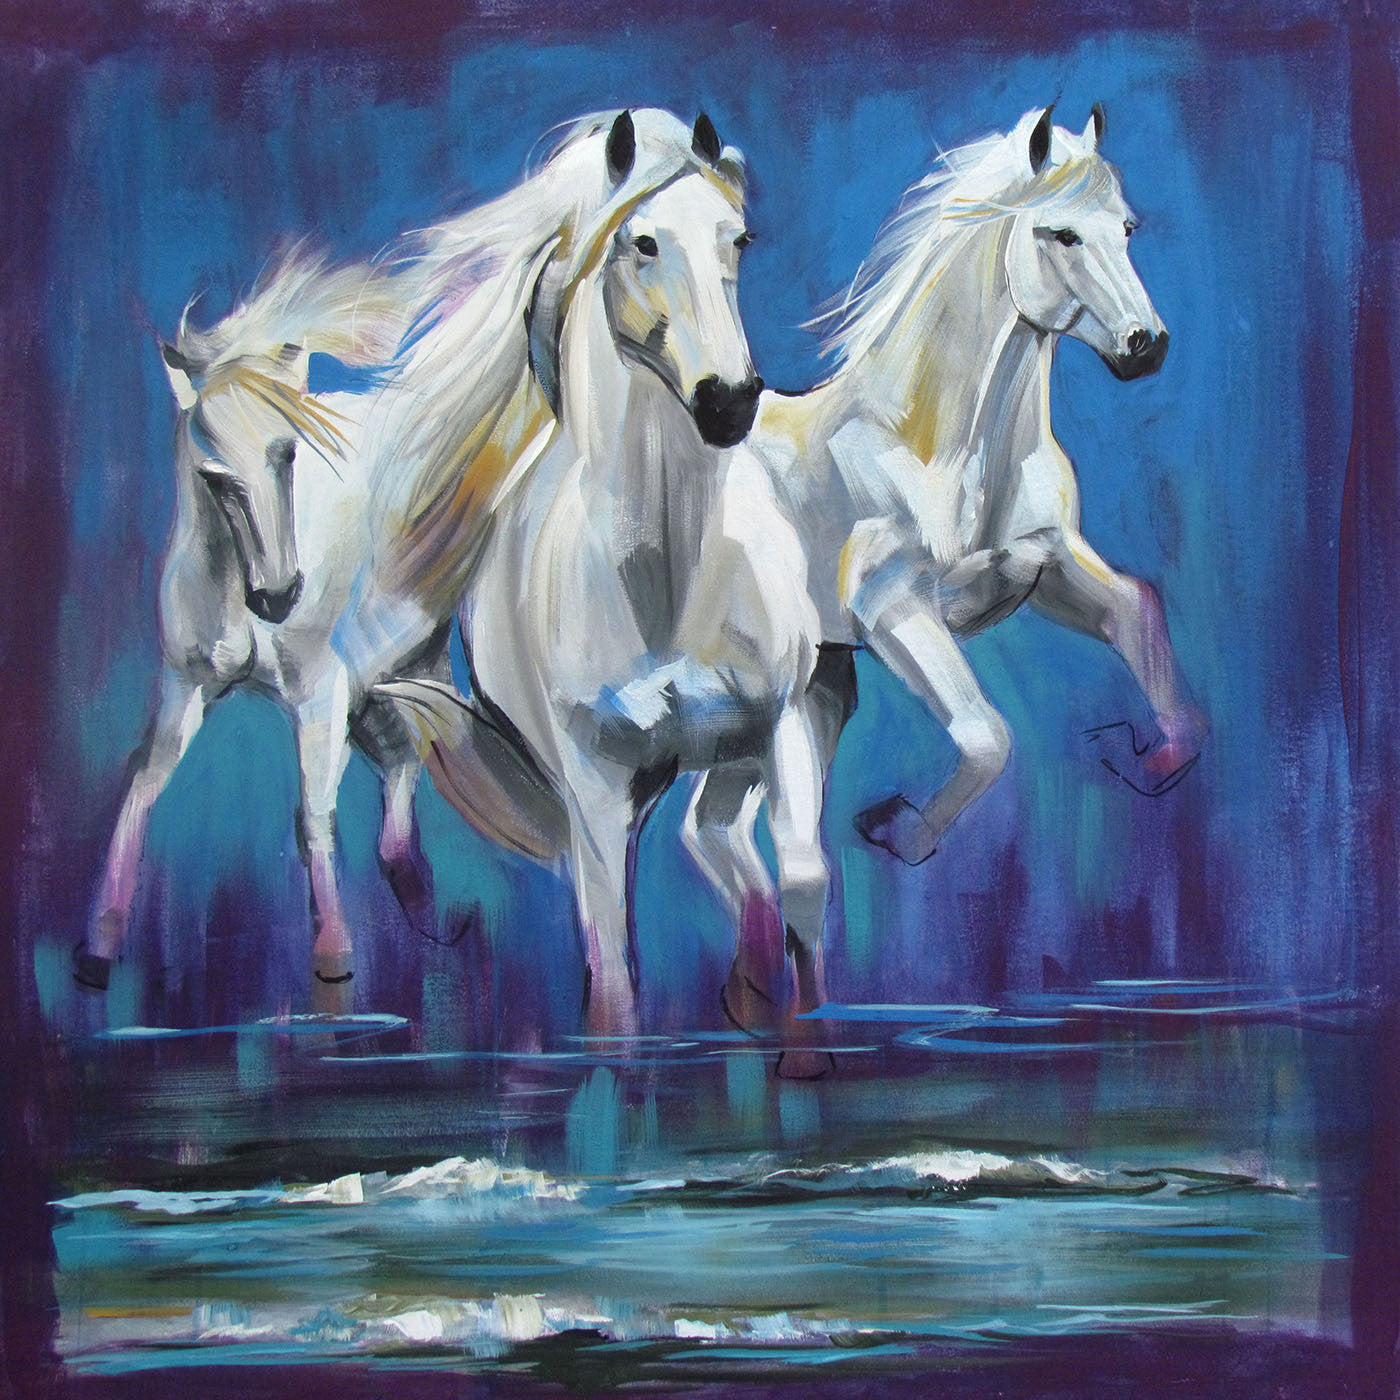 Running Horses Oil Painting Large Art Prints By Joel Jerry Buy Posters Frames Canvas Digital Art Prints Small Compact Medium And Large Variants